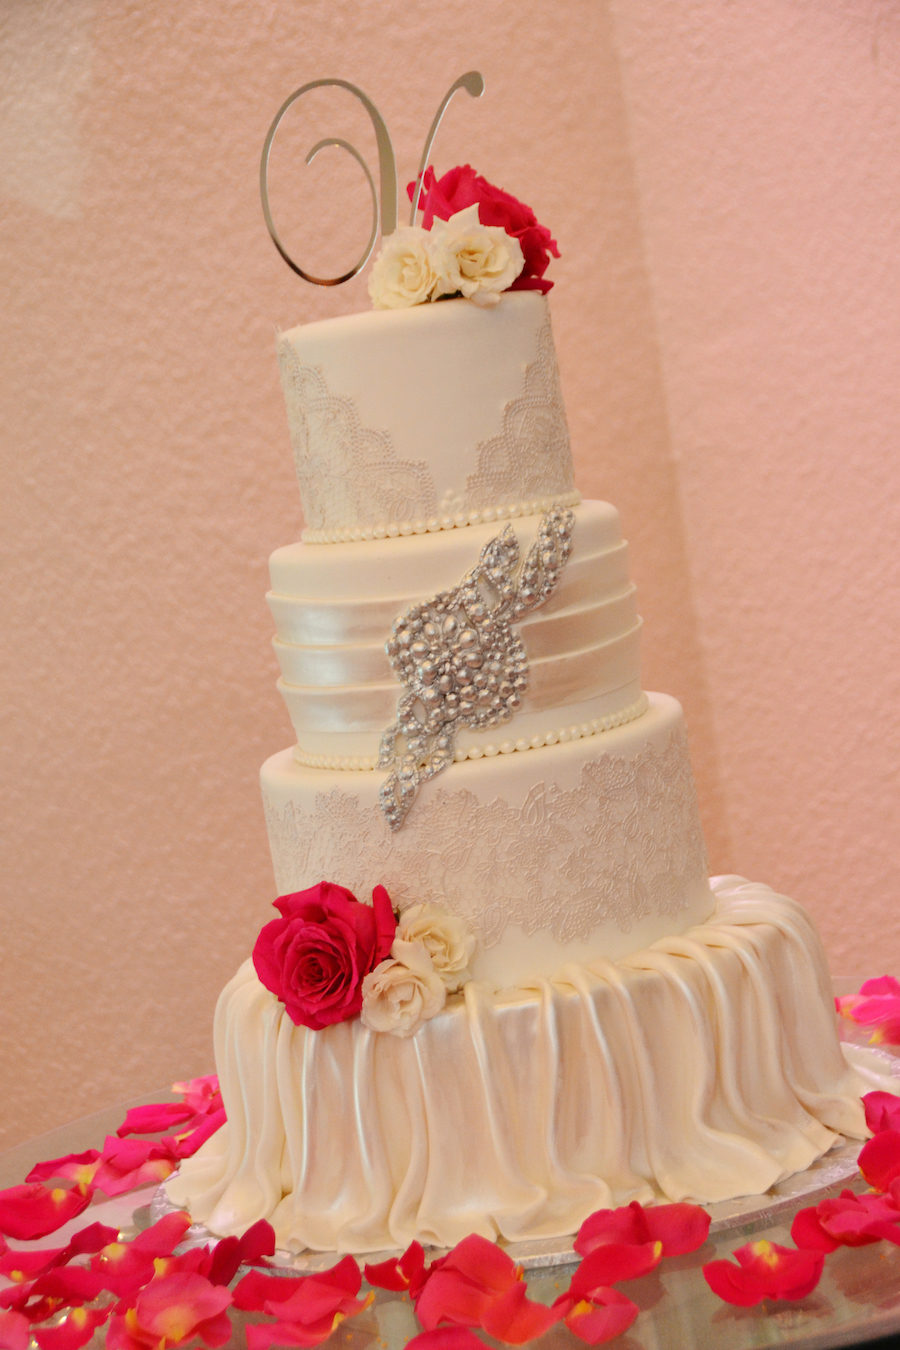 4-Tier White Wedding Cake with Flowers by The Cake Zone   Sarasota Wedding Indoor Reception